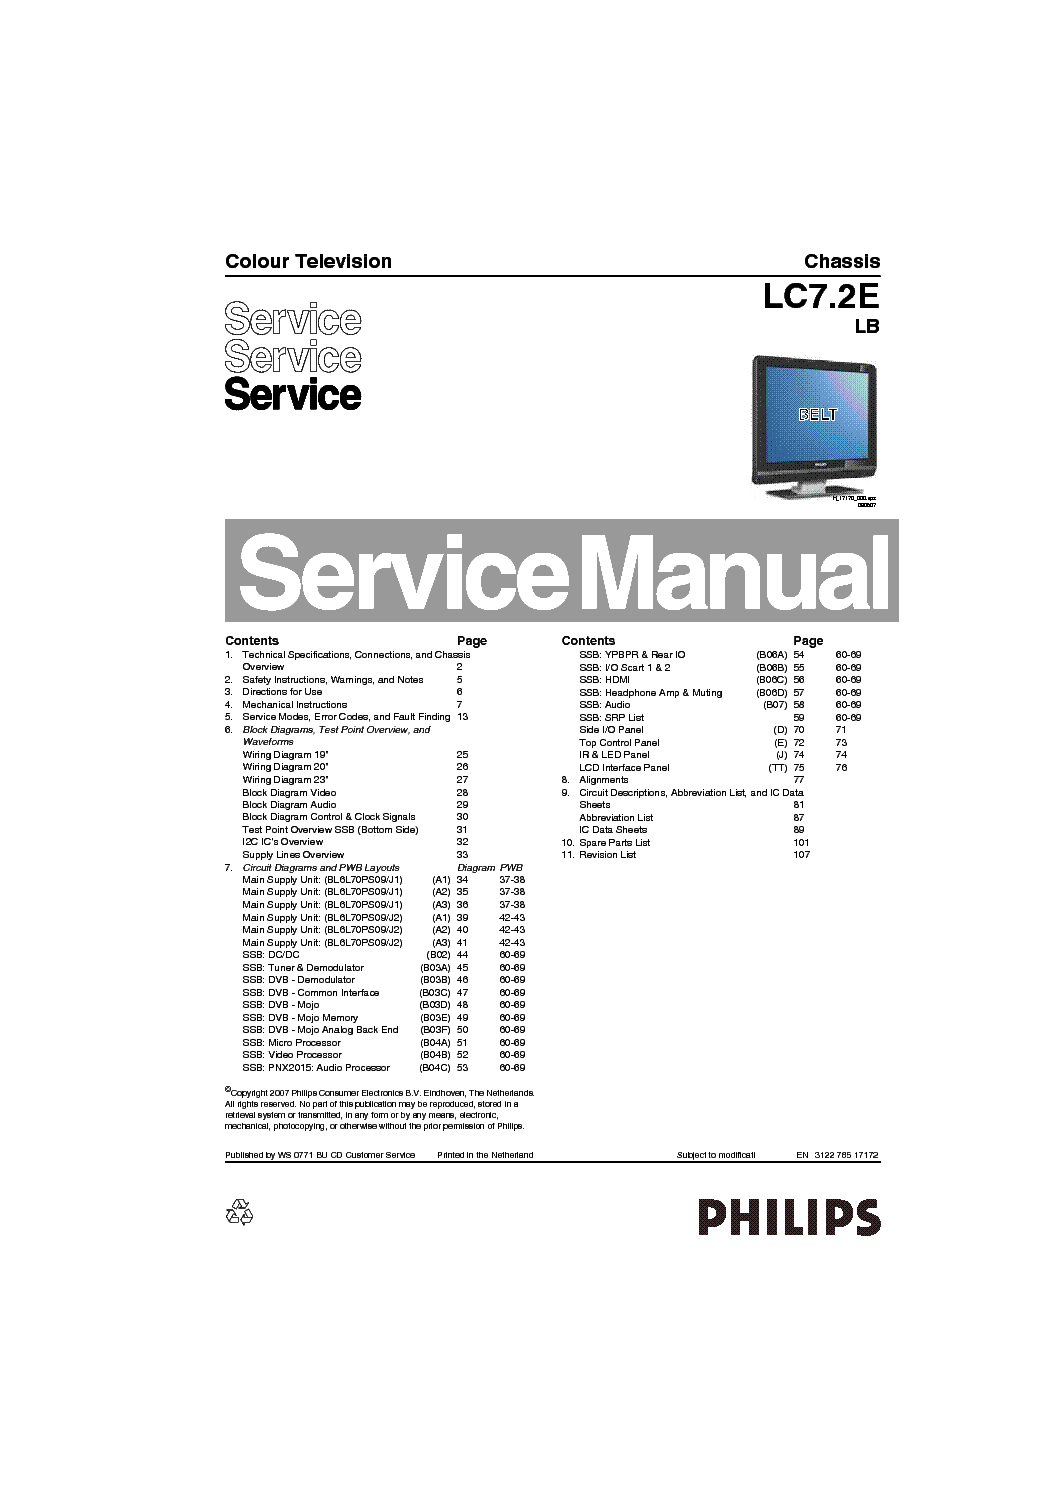 PHILIPS CHASSIS LC7.2E-LB SM Service Manual download